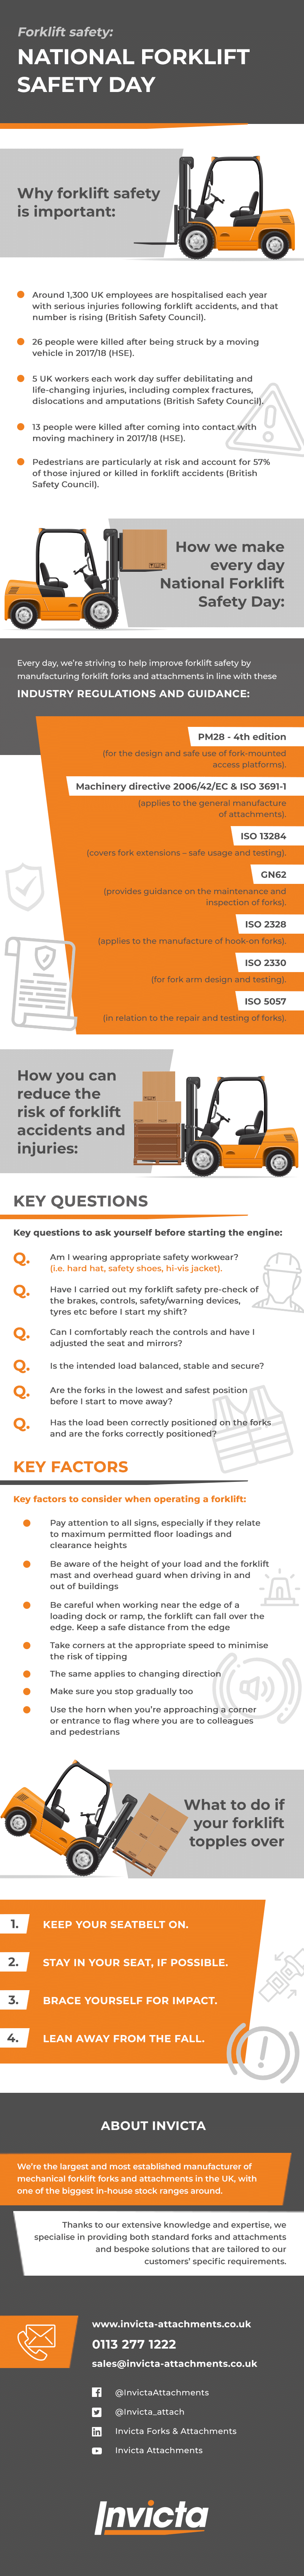 Invicta-Infographic-Forklift-Safety